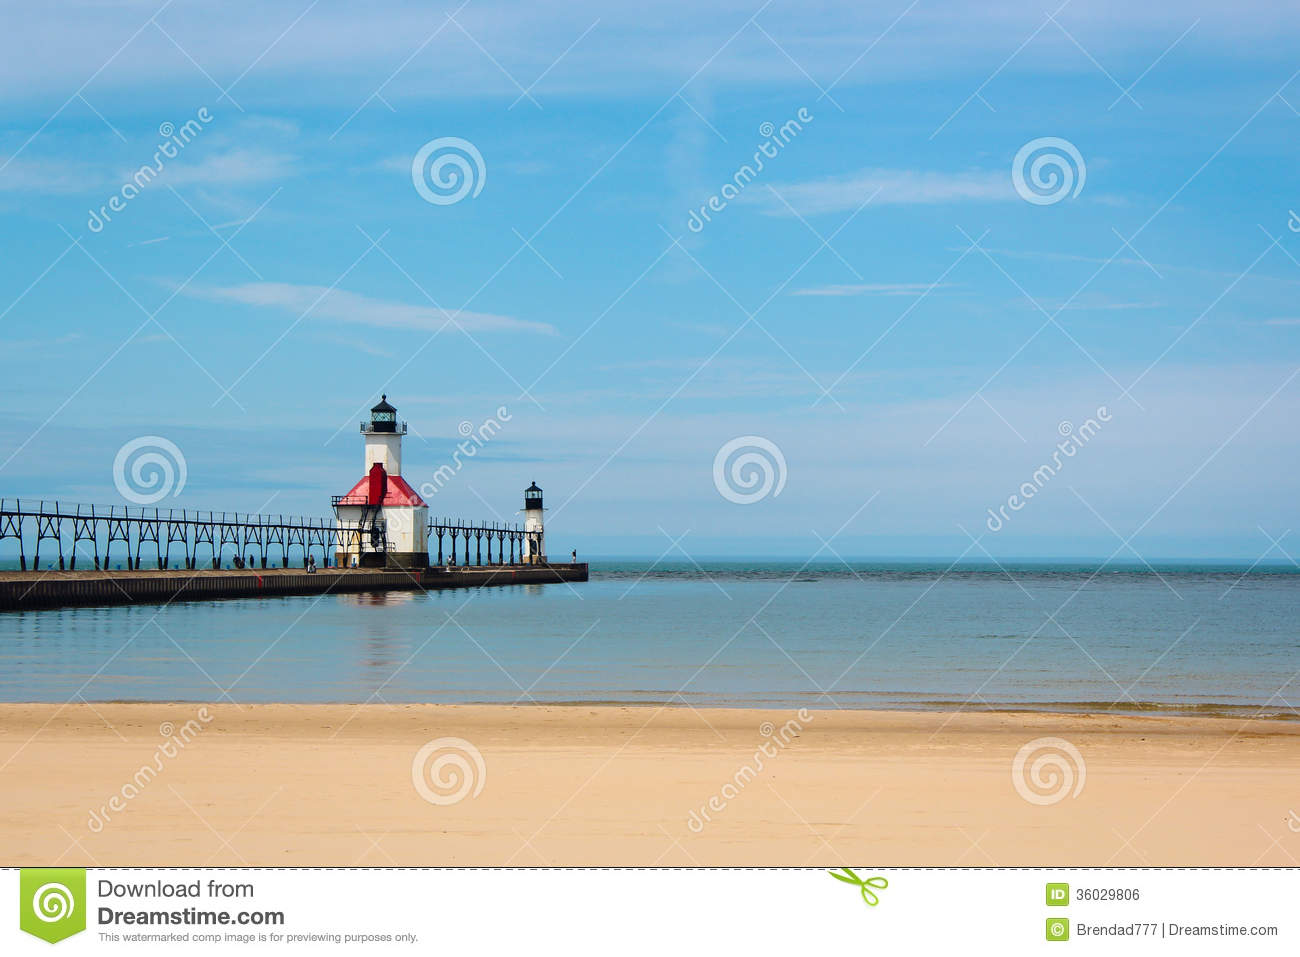 lake michigan beaches map with Royalty Free Stock Image Lighthouse Lake Michigan Benton Harbor Sand Beach Foreground Image36029806 on golfforest as well Rochester besides Watershed additionally 2739563385 as well LakeMichigan.